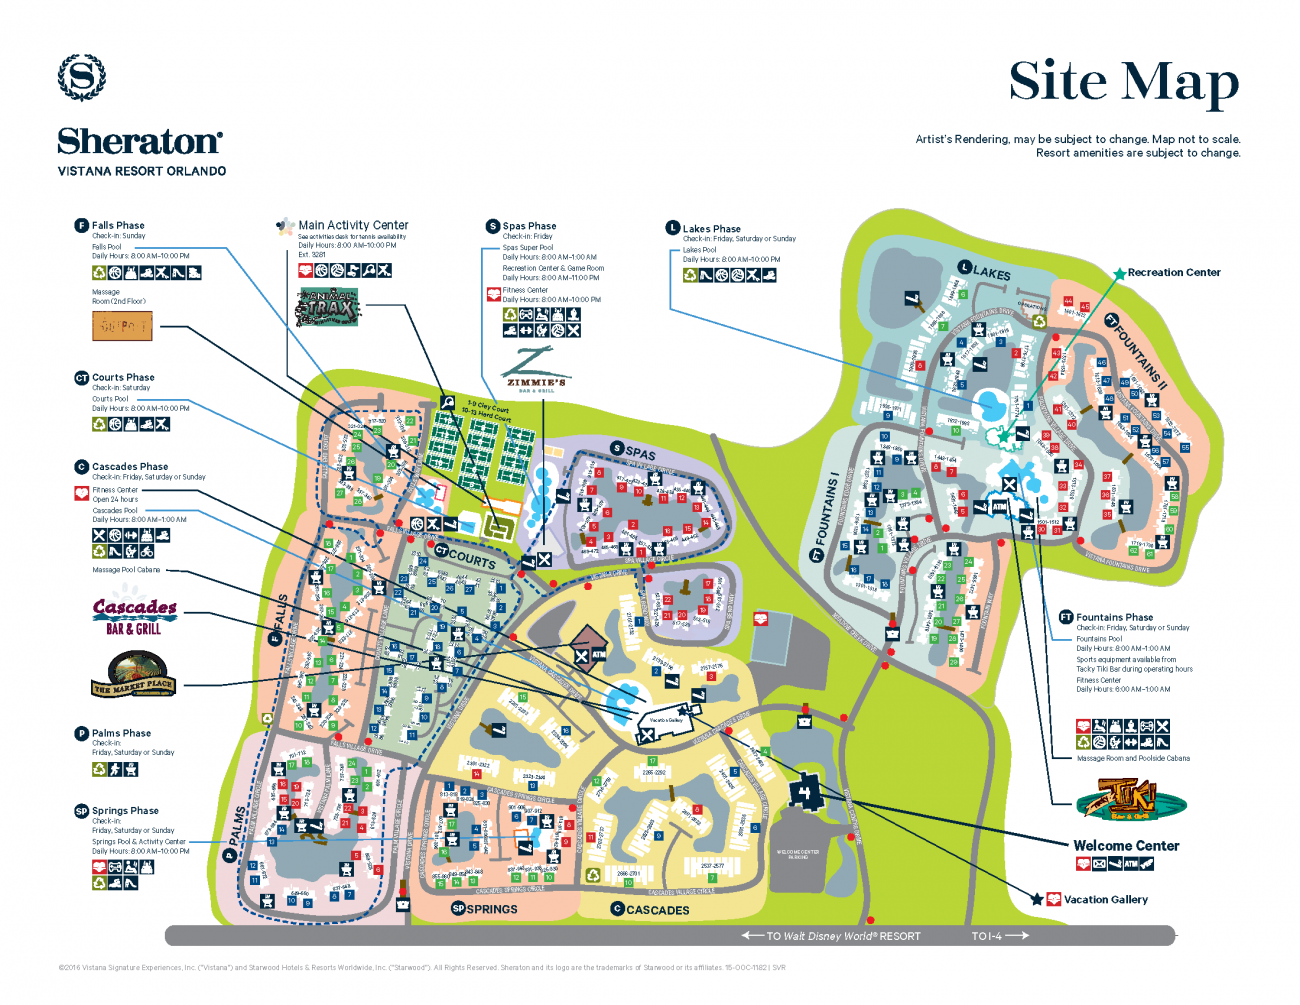 Sheraton Vistana Resort Map Sheraton Vistana Resort Resort Map | Disney! in 2019 | Orlando